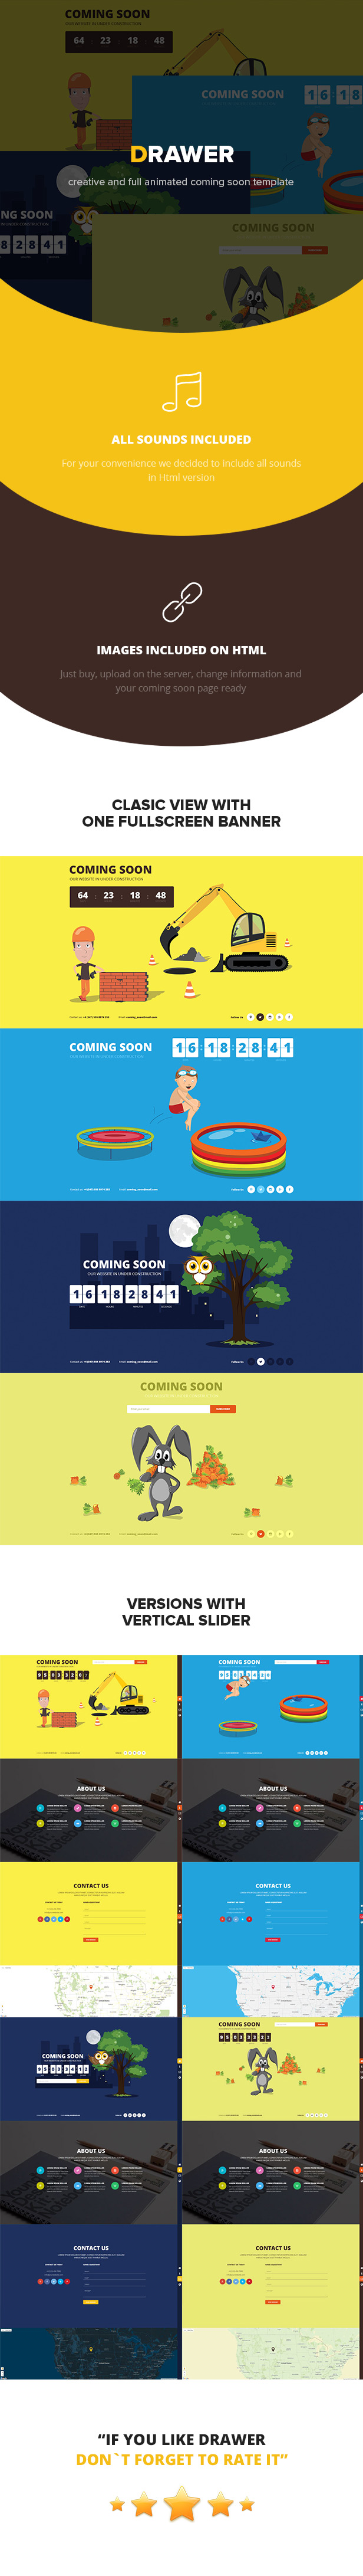 Drawer - Responsive Animated Coming Soon Template - 1